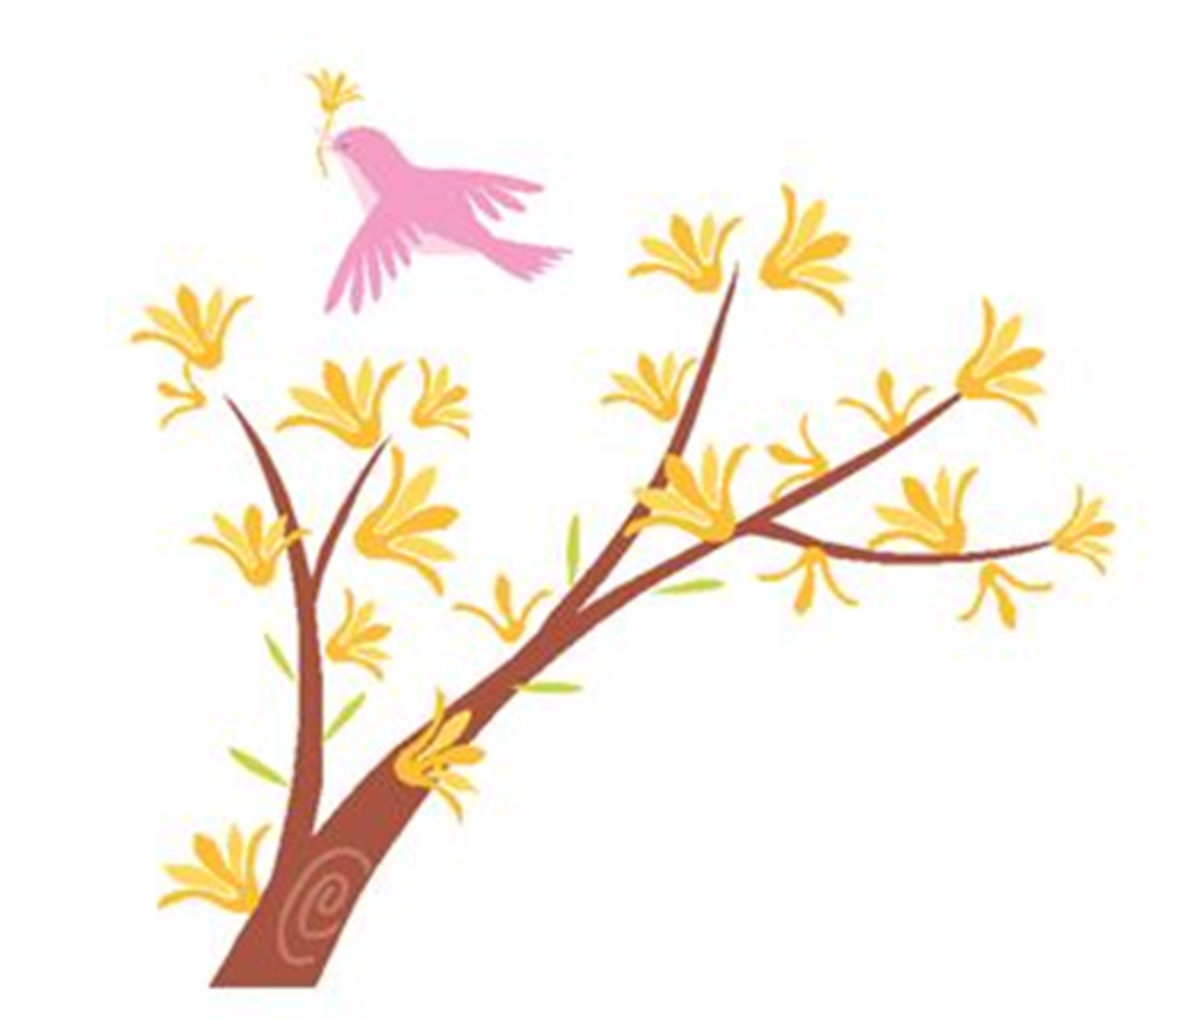 Bird Picking Flower from a Tree